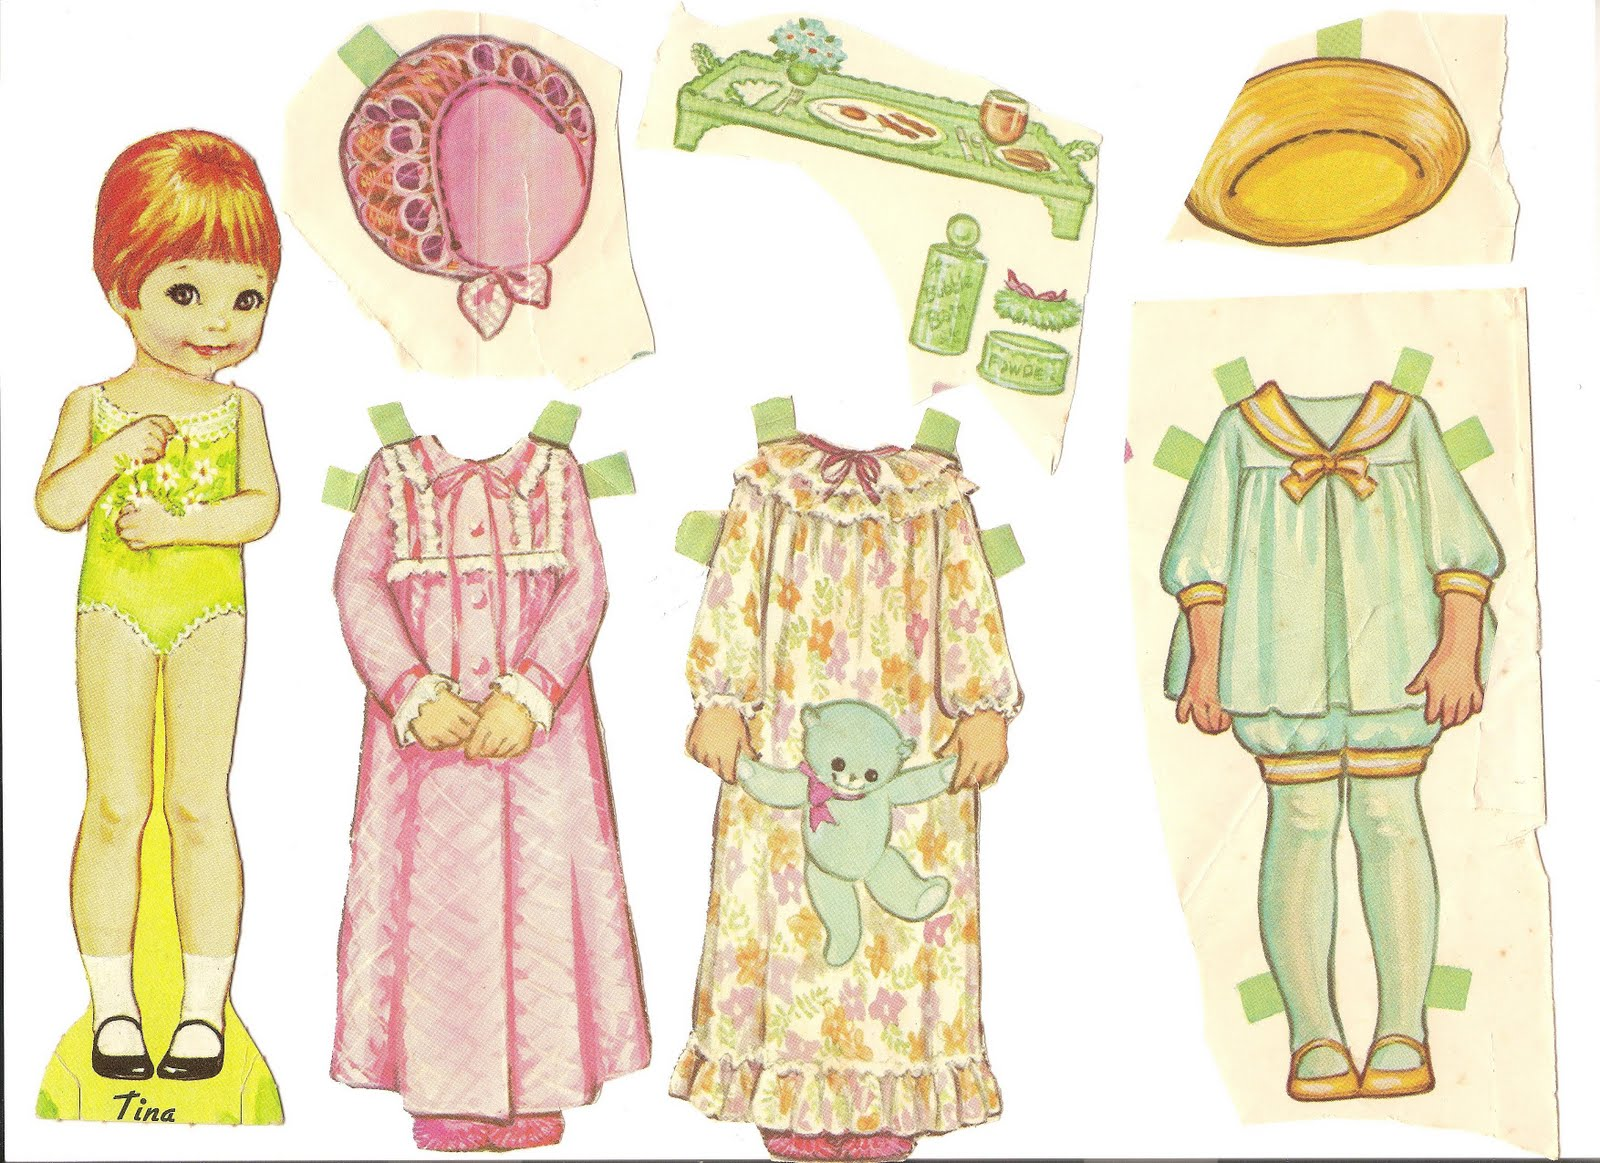 Mostly Paper Dolls: My TINA Paper Doll, 1967